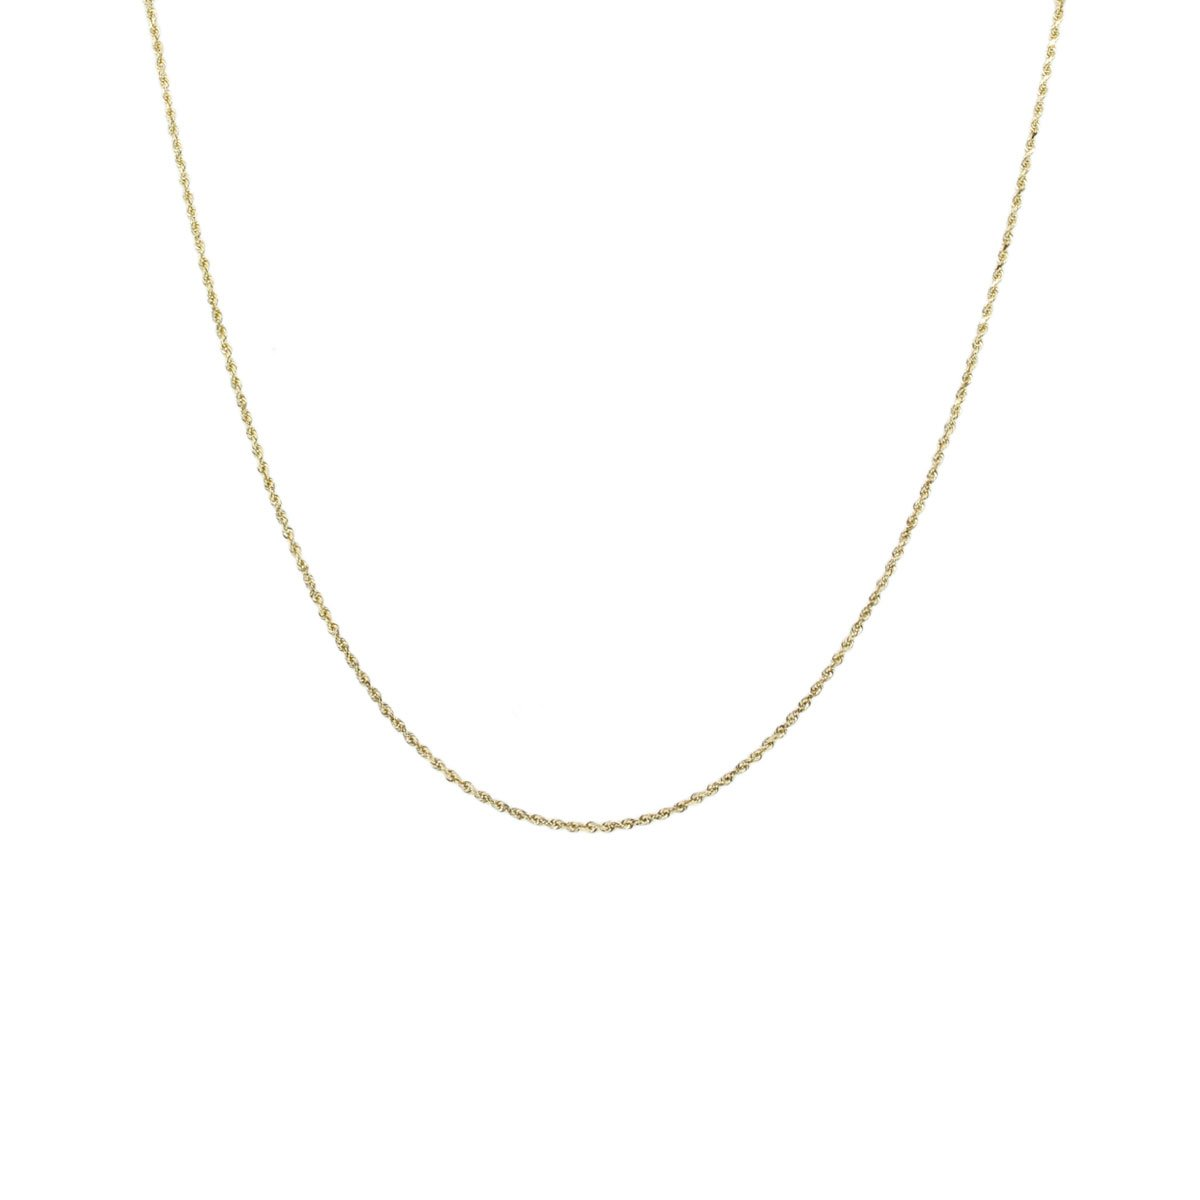 14K Gold 0.8MM Thin Rope Chain Necklace- Available in Yellow, White or Rose-16''-24''